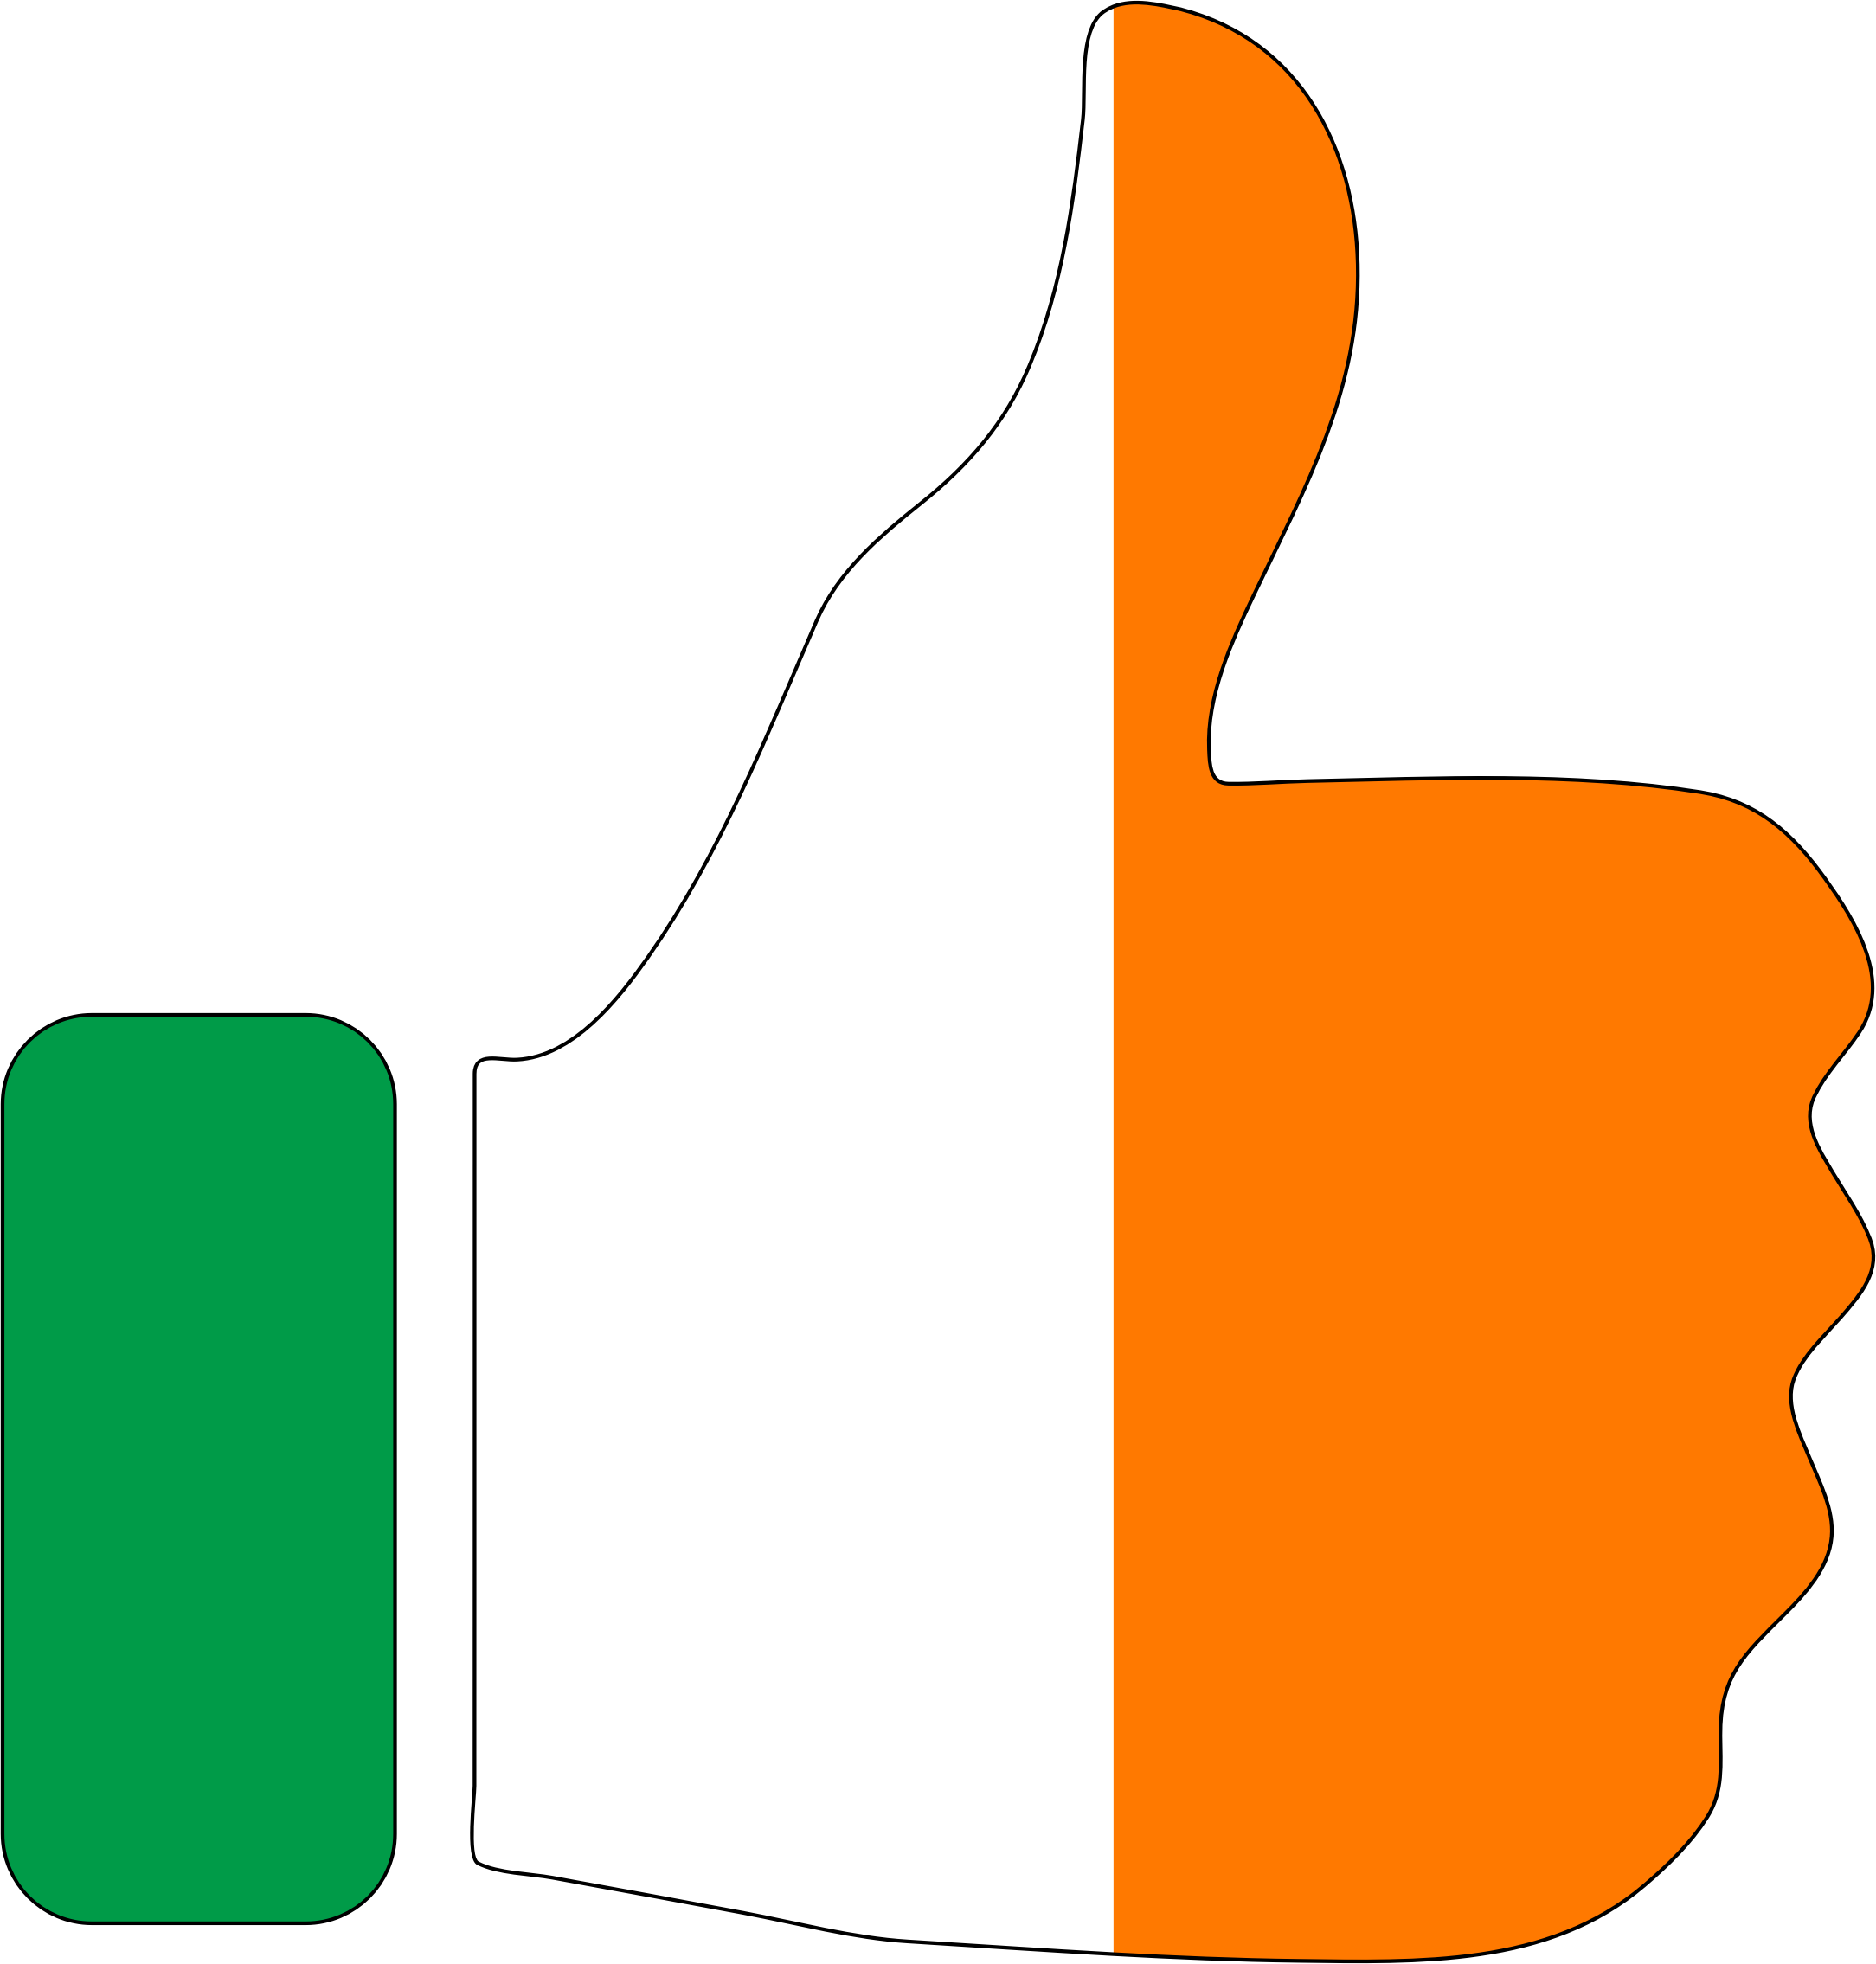 Thumbs Up Ireland With Stroke by GDJ